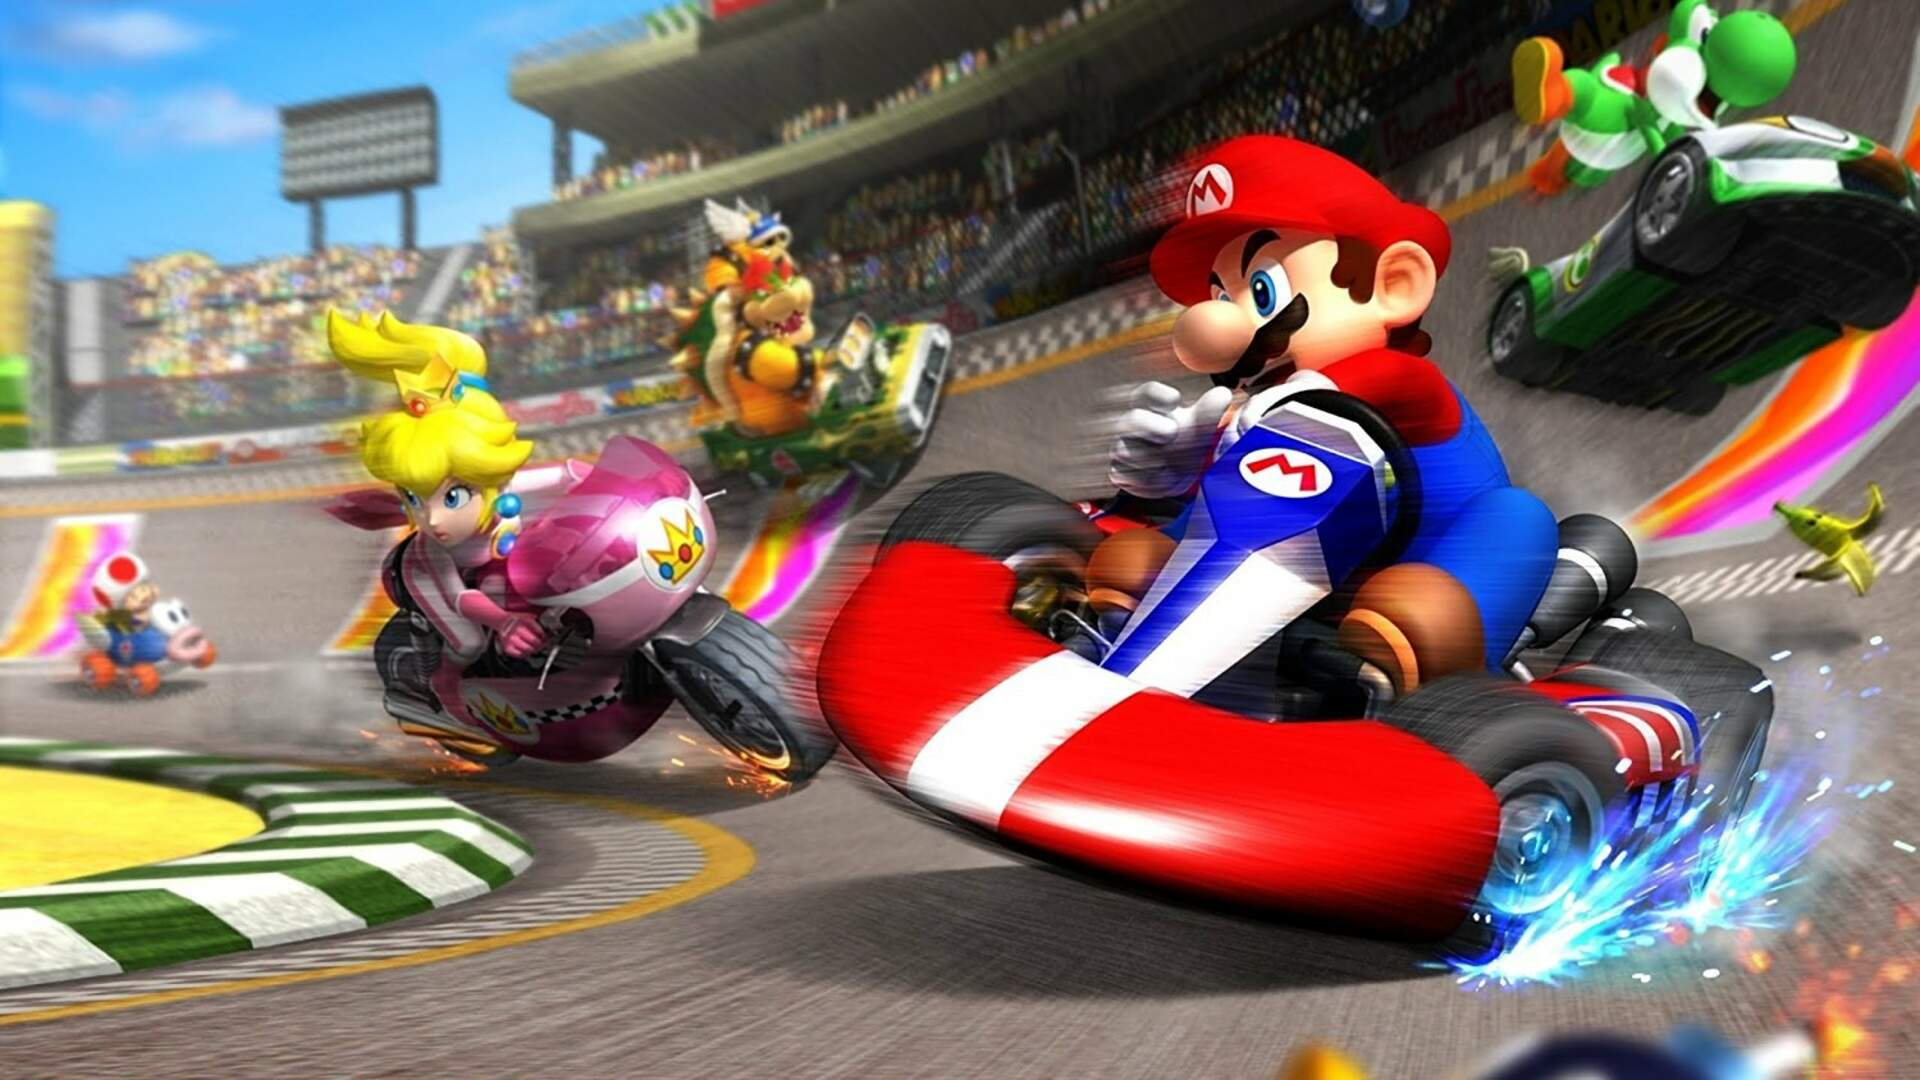 Mario Kart Tour Coins: Fastest Way to Earn Coins